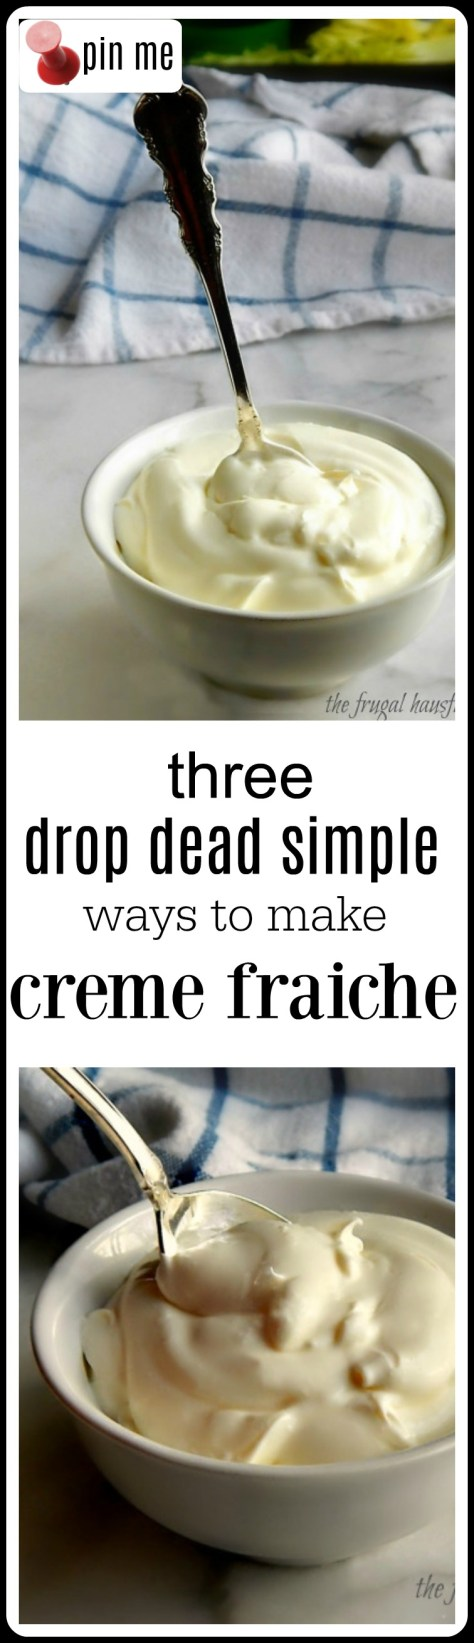 3 Ways to make Creme Fraiche & some trouble shooting guides (just in case!)